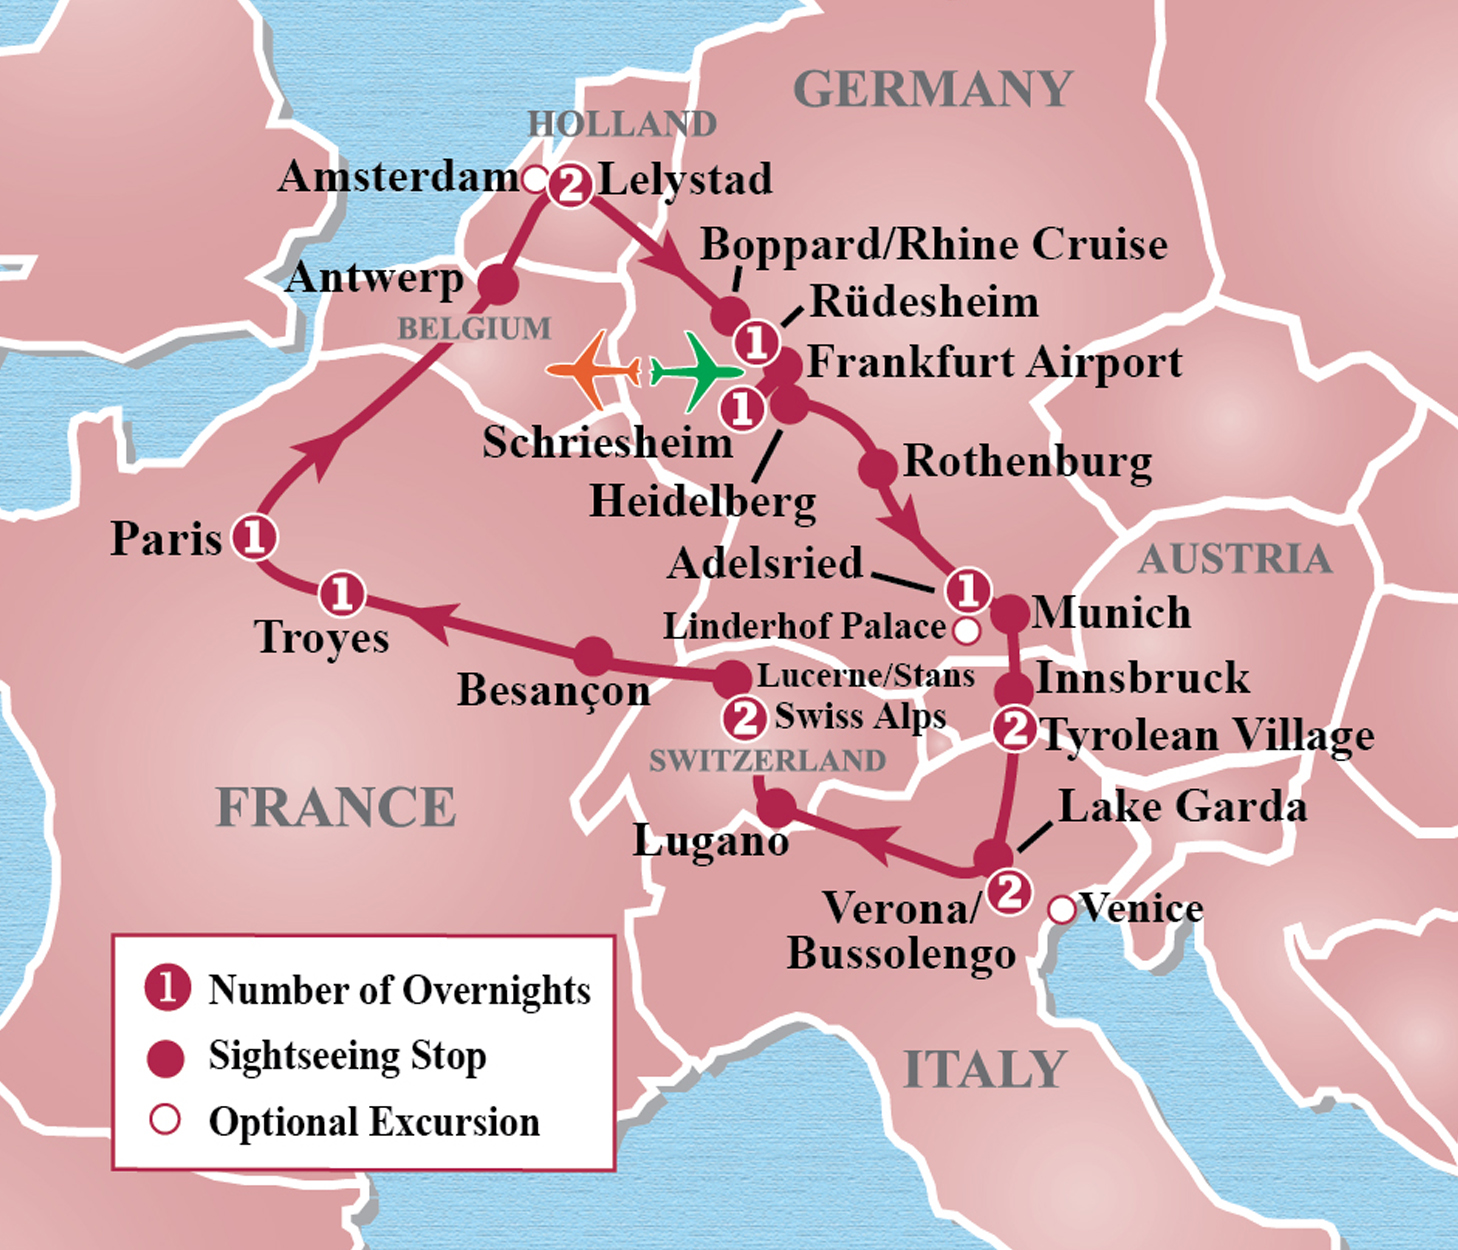 Heart of Europe Circle Tour Itinerary Detail Image Tours